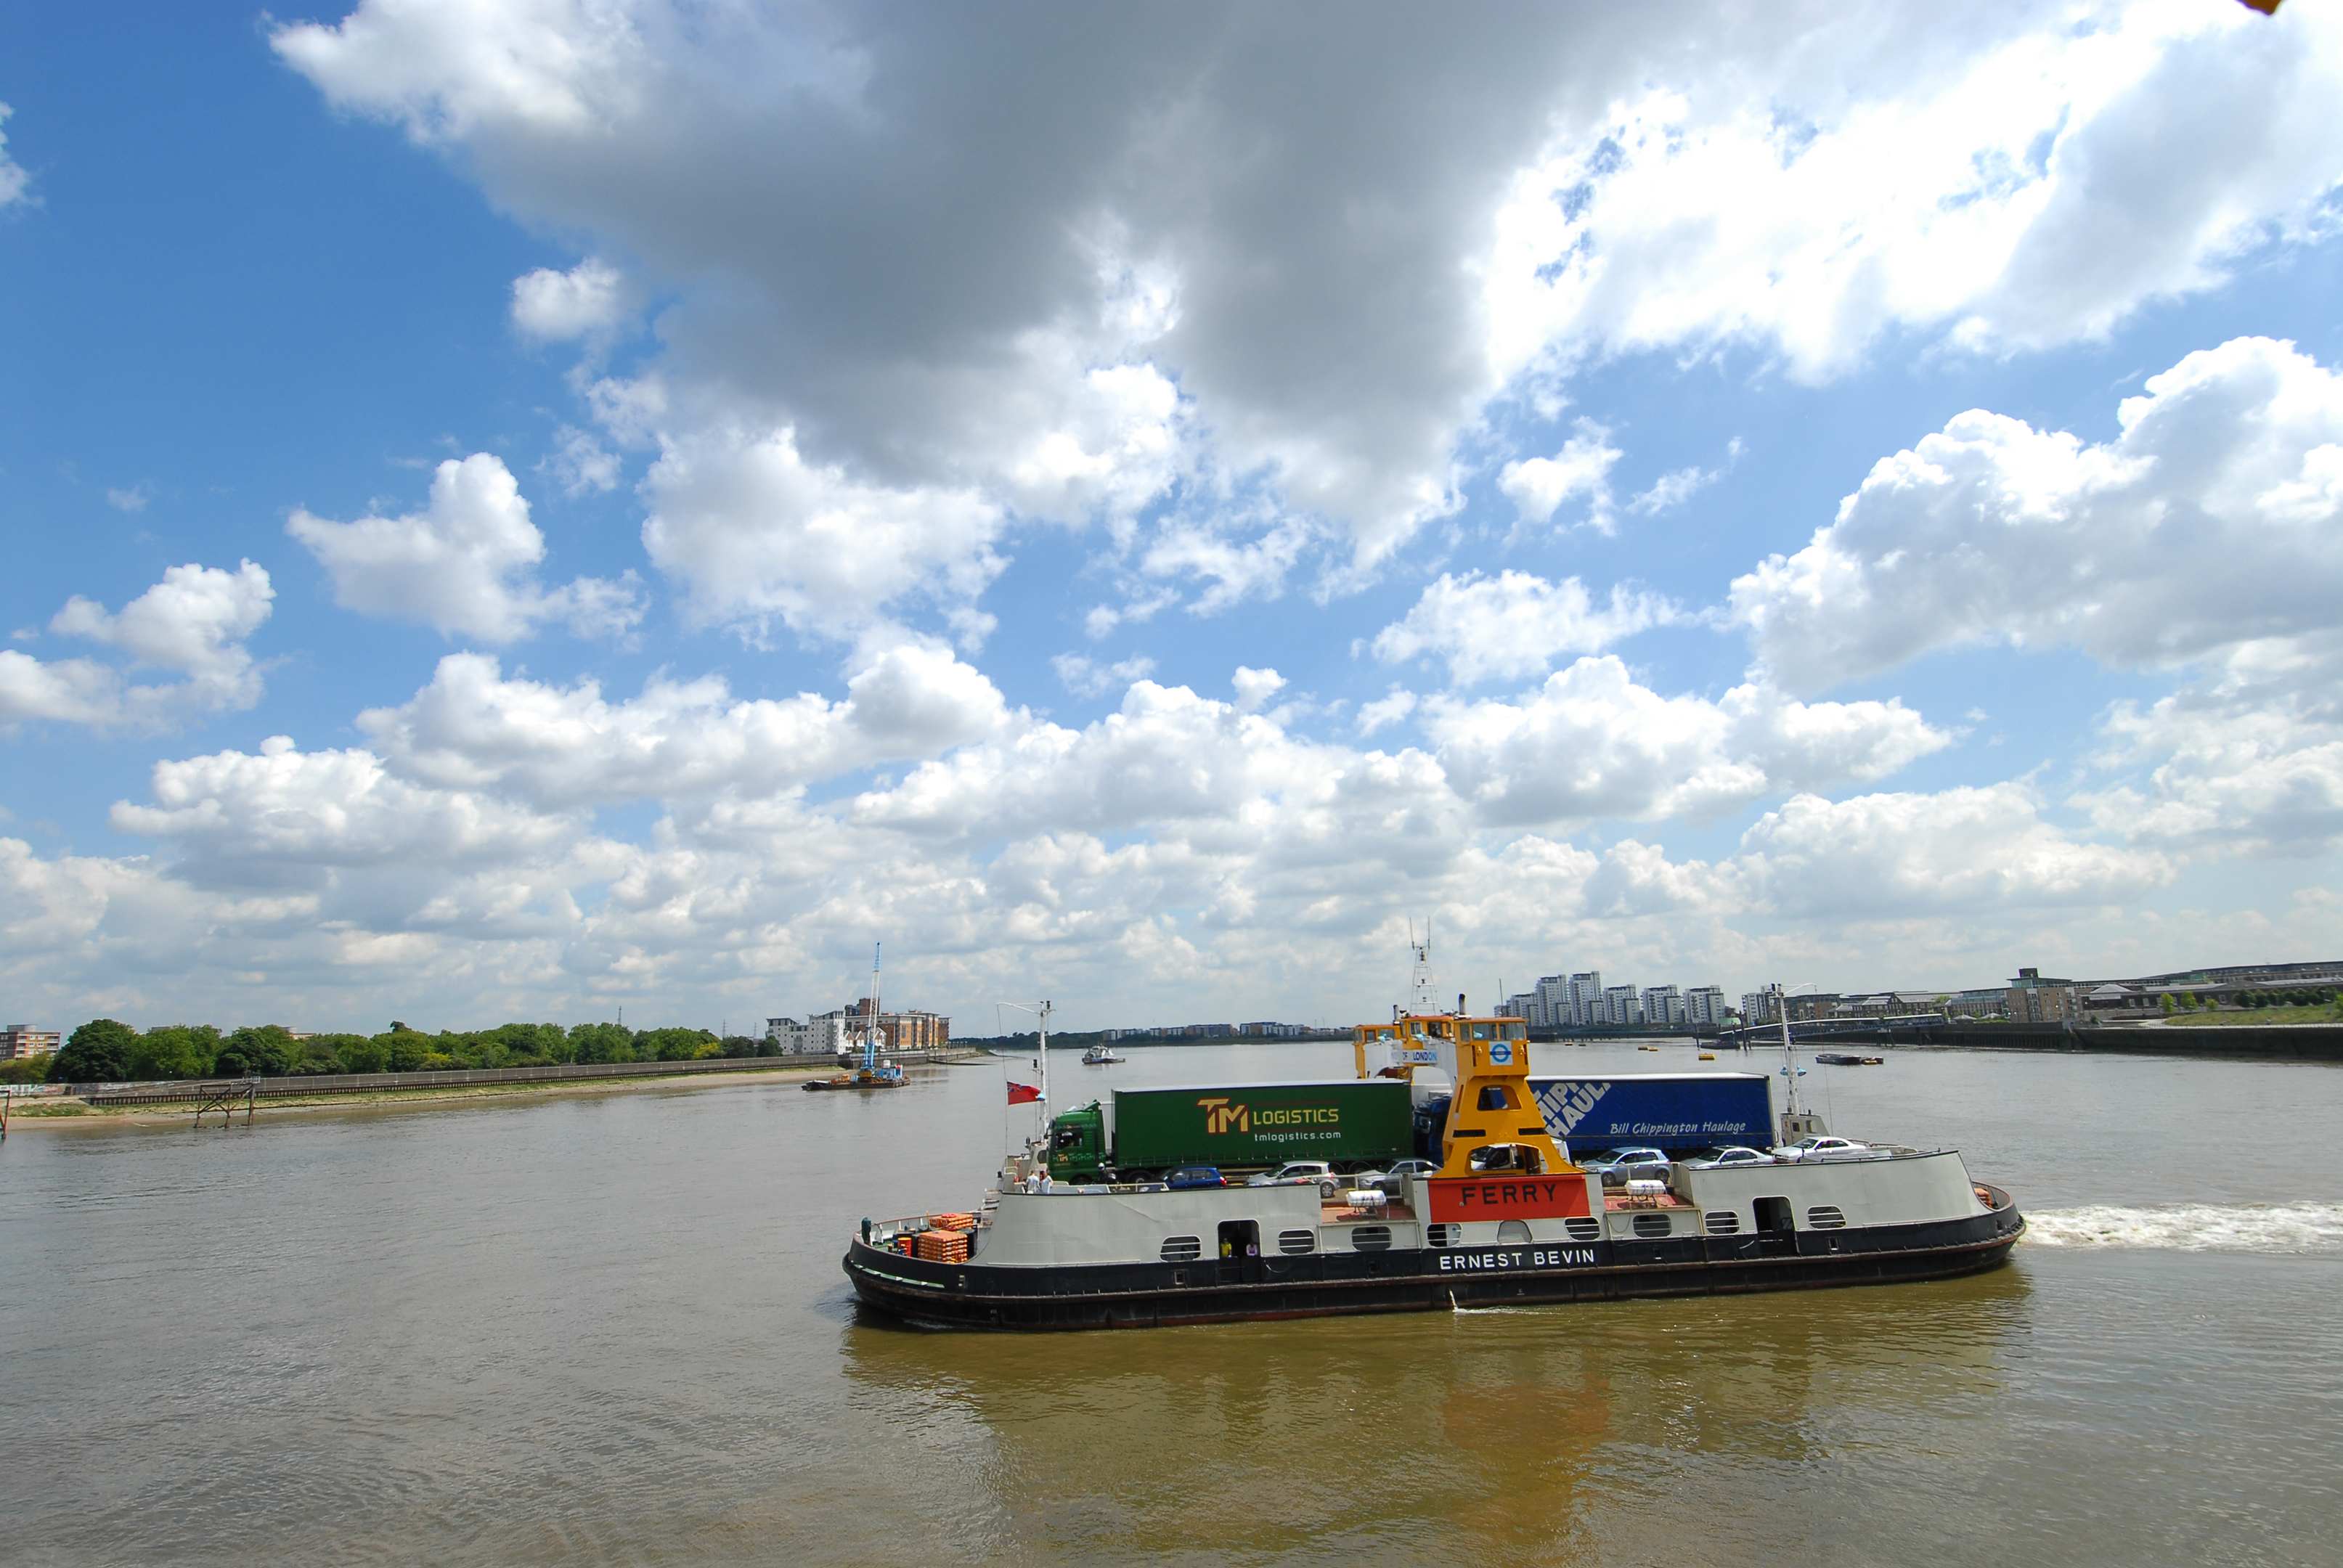 Briggs Marine operates the Woolwich free ferry across the River Thames.